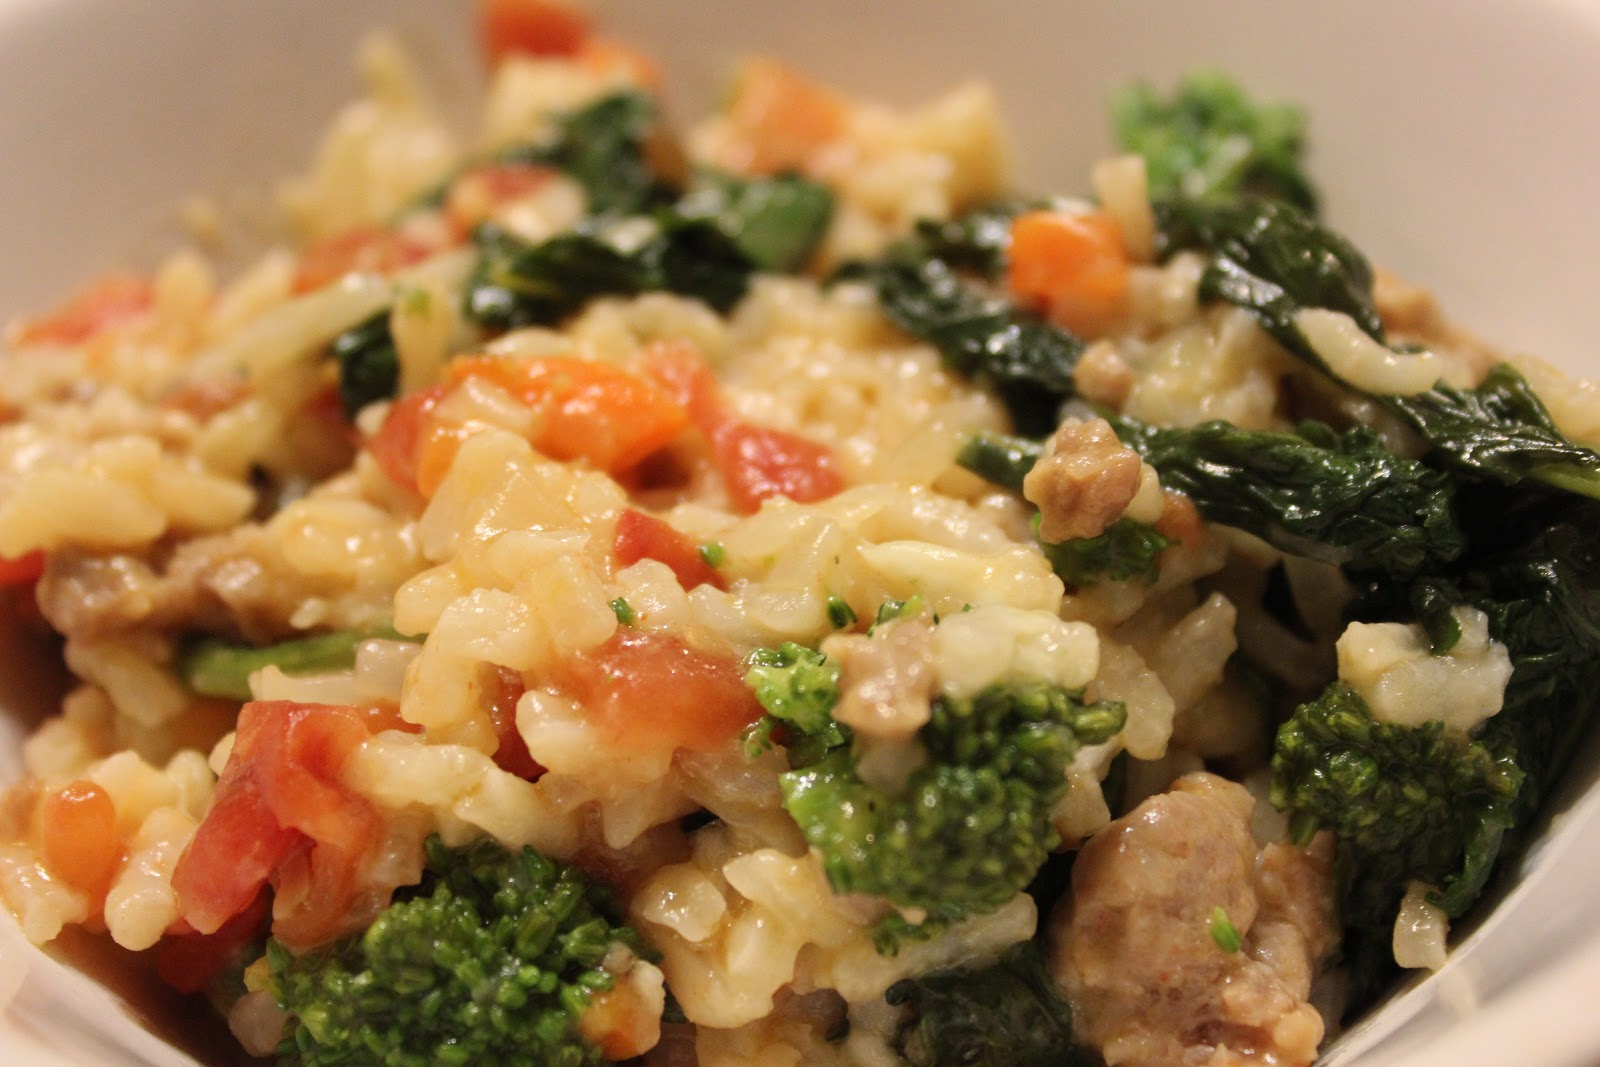 The busy mom cafe sausage broccoli rabe risotto sausage broccoli rabe risotto recipe adapted from foodnetwork courtesy of food network magazine forumfinder Gallery